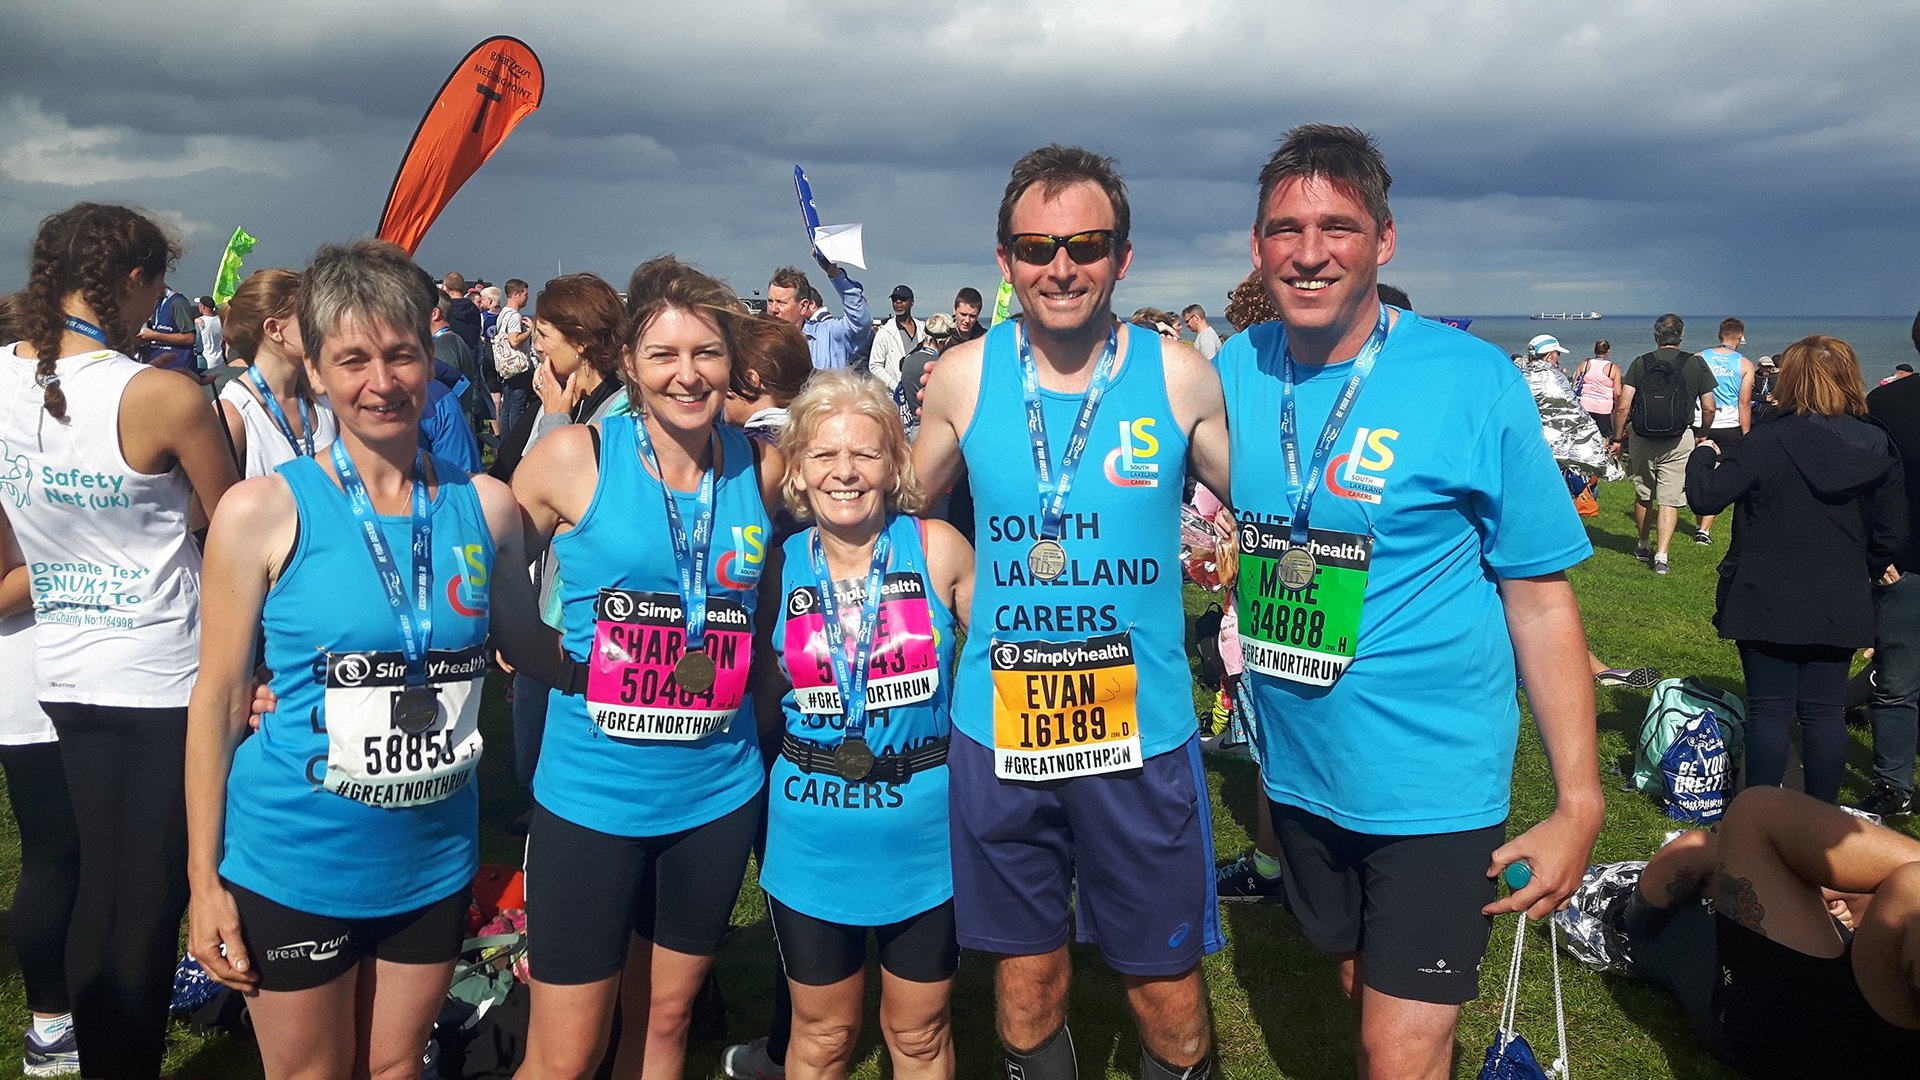 Carer Support South Lakes Great North Run